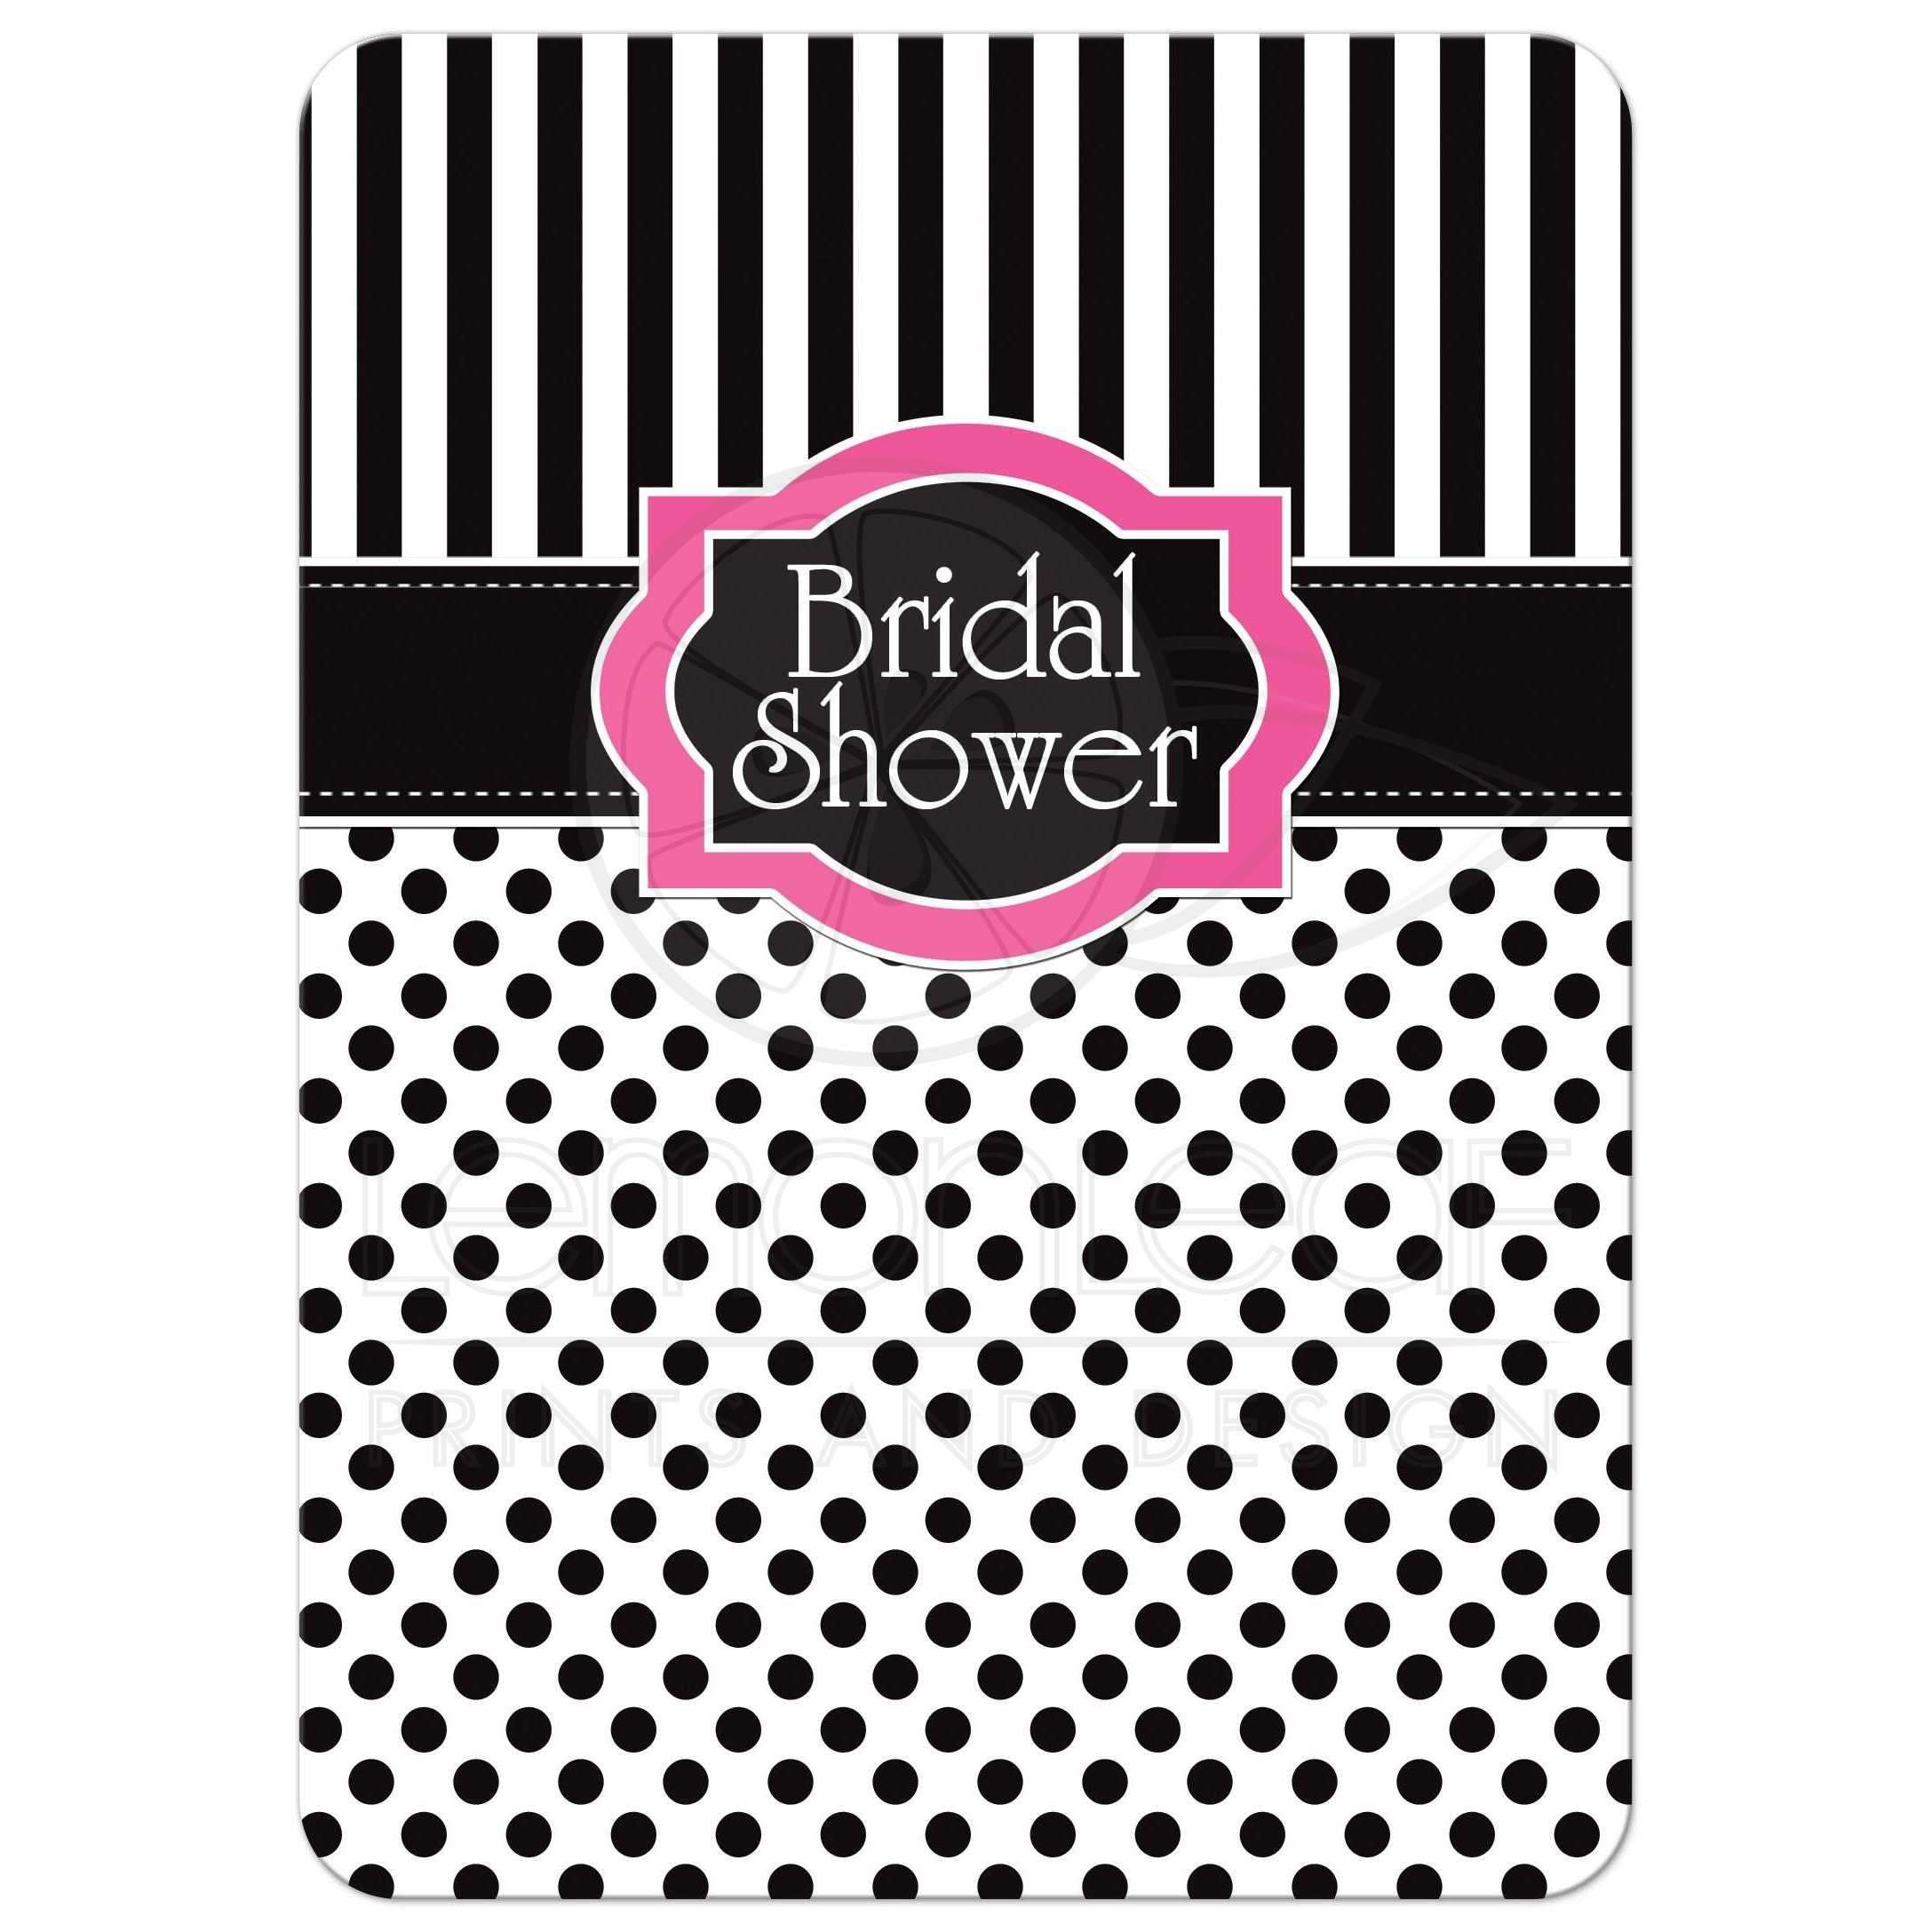 Bridal shower invitation black white pink polka dots stripes great black and white striped bridal or wedding shower invitation with polka dots and pink accents filmwisefo